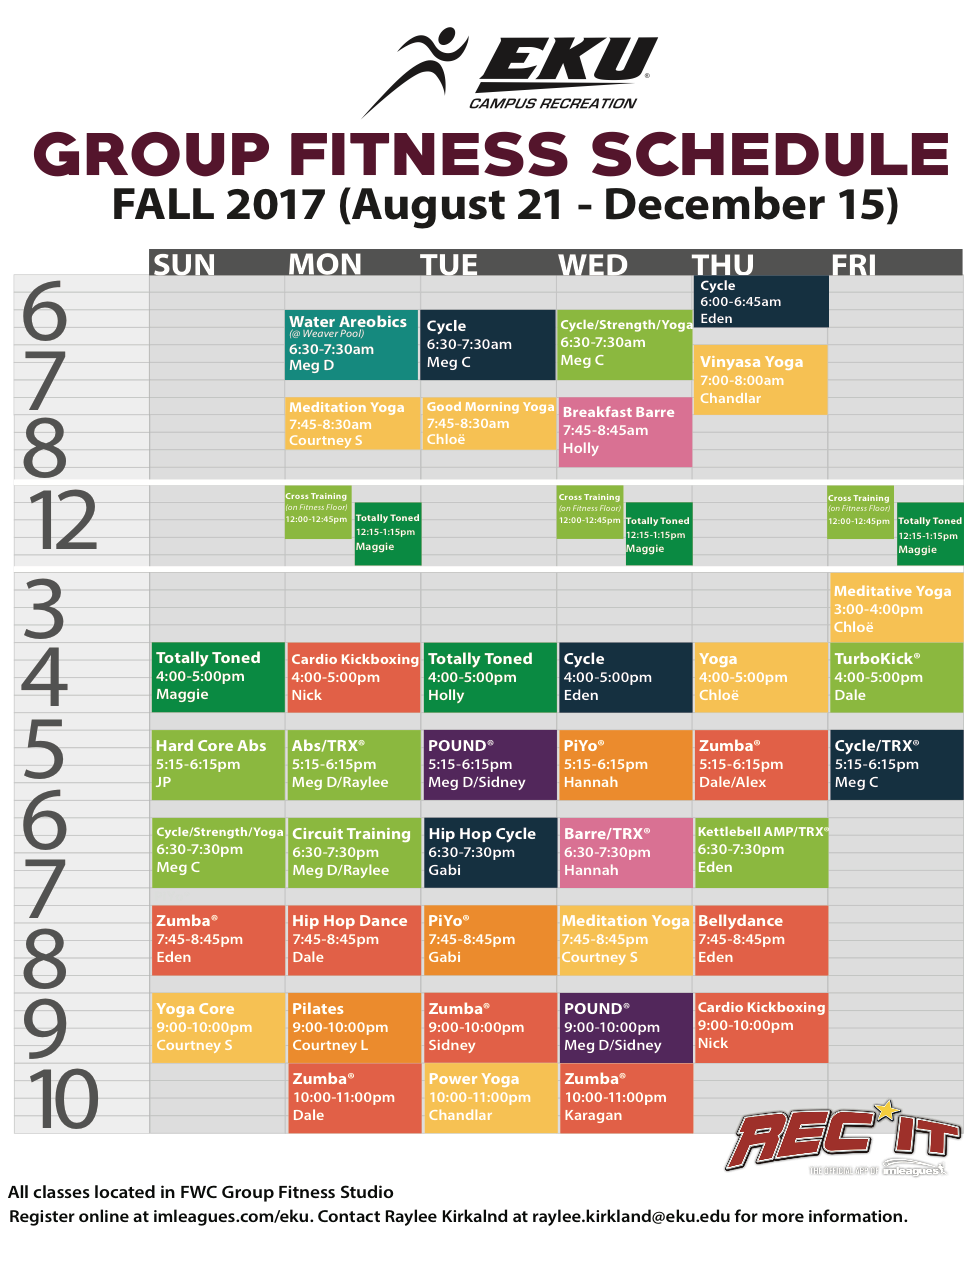 Group Fitness Fall 2017